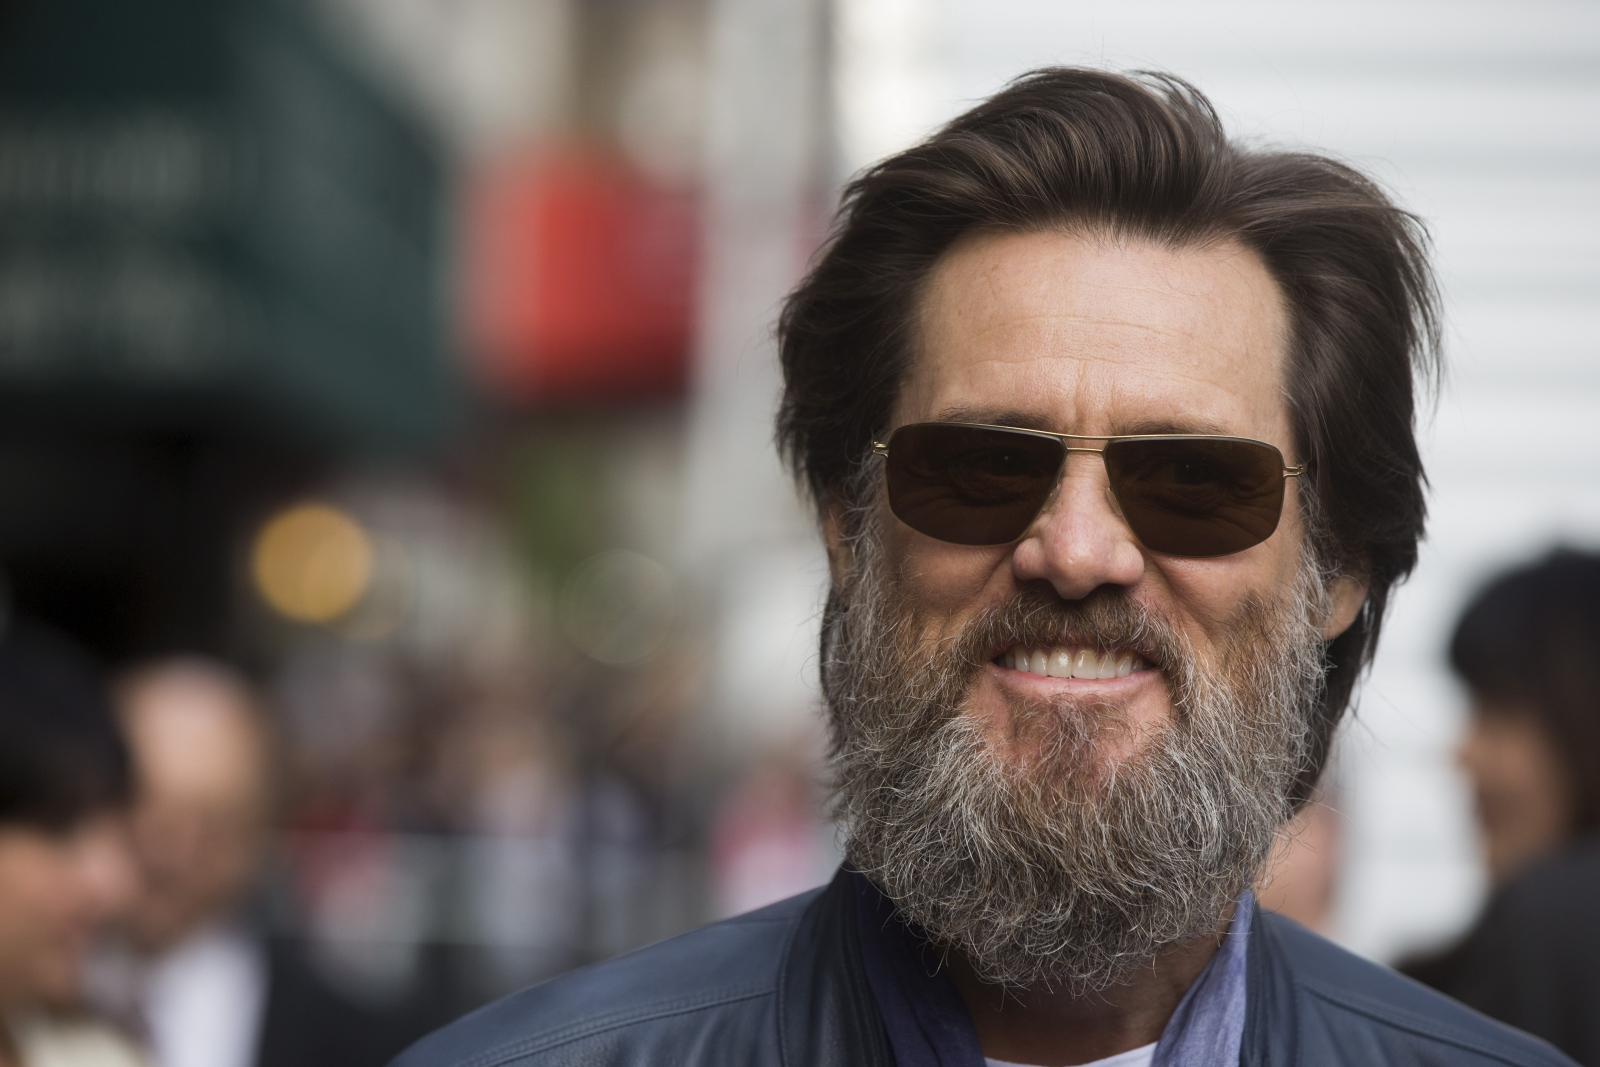 Jim Carrey fans are worried after actor shares ...